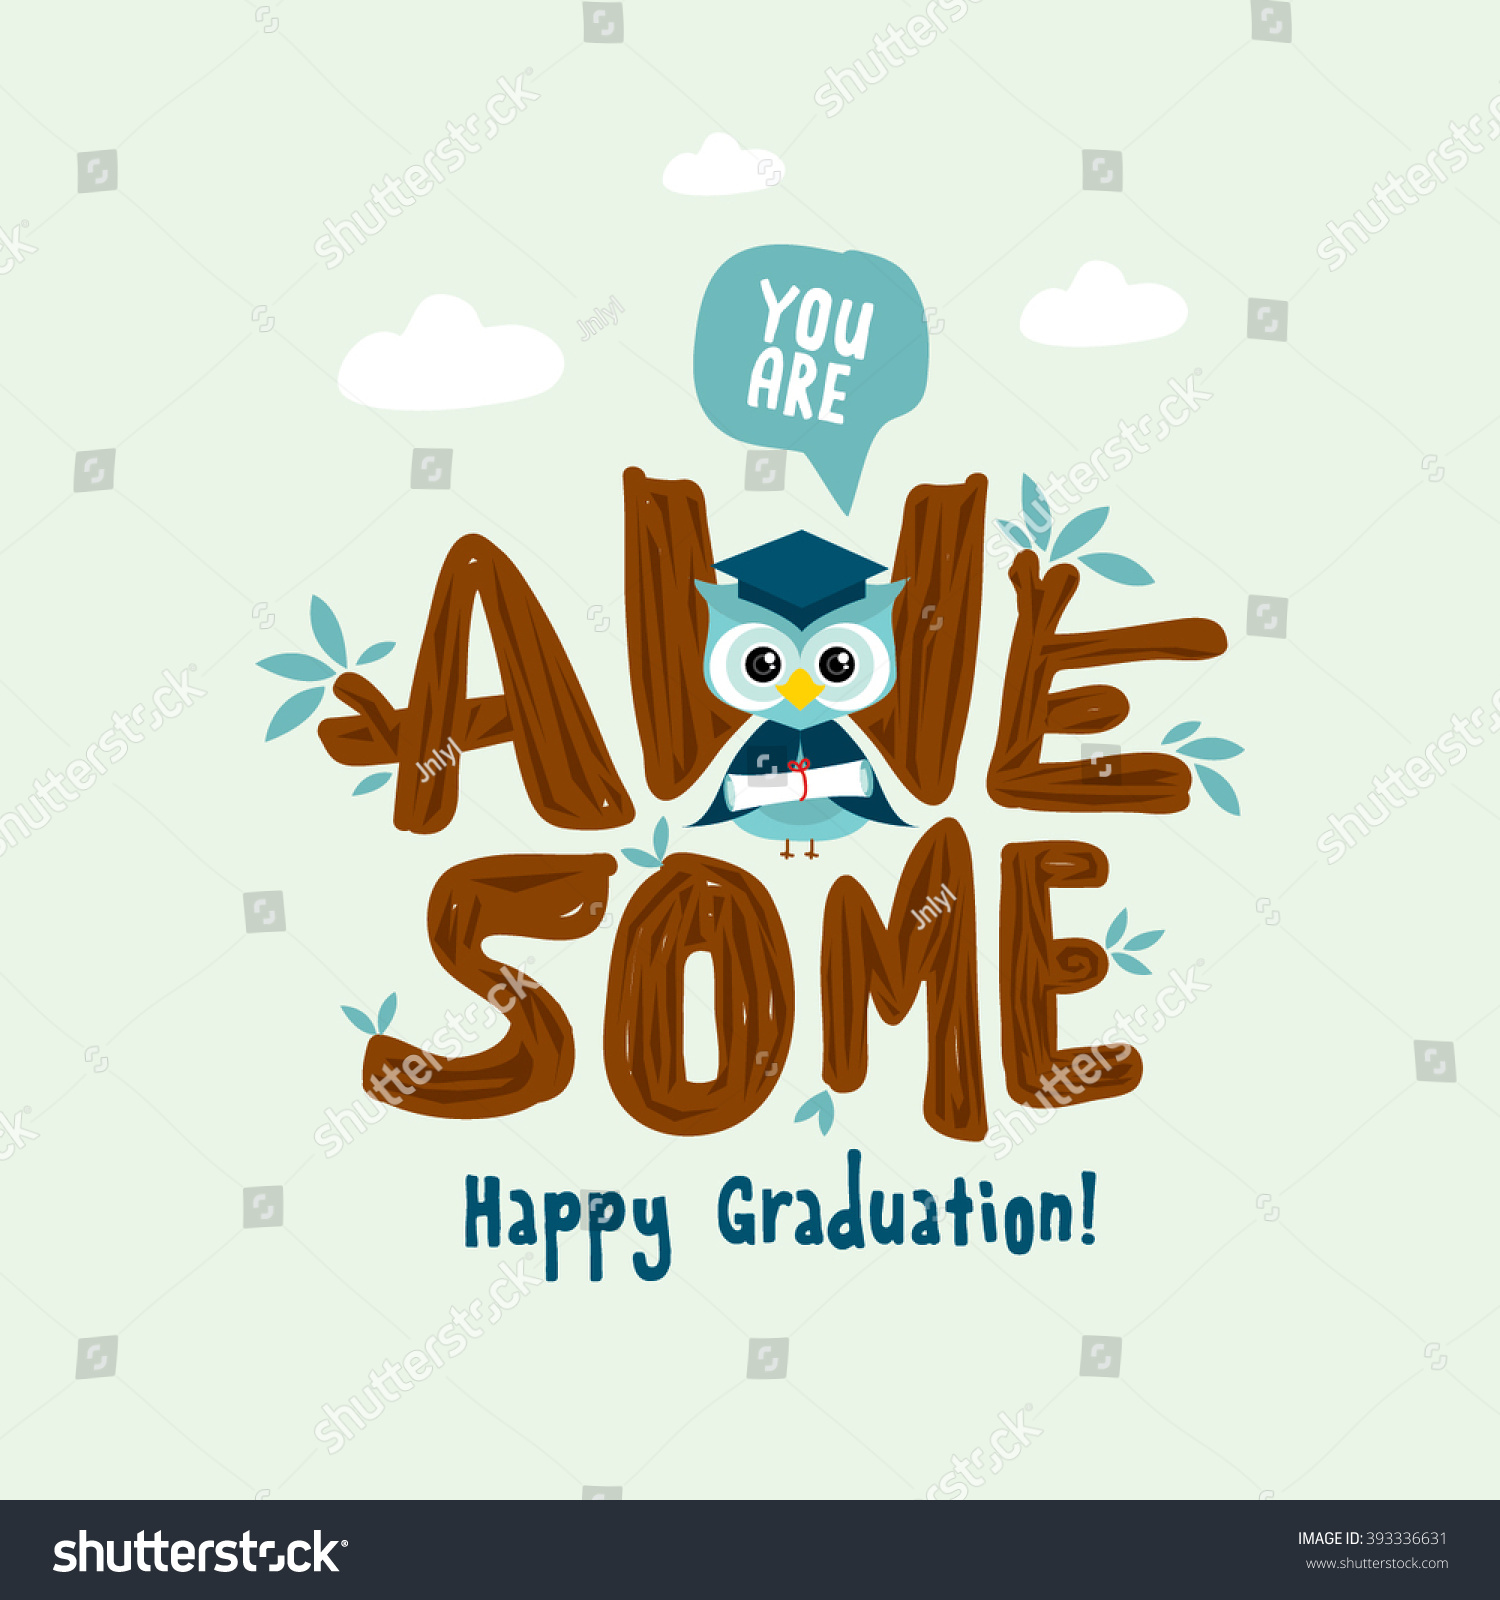 Awesome Typography Design Happy Graduation Greeting Stock Vector